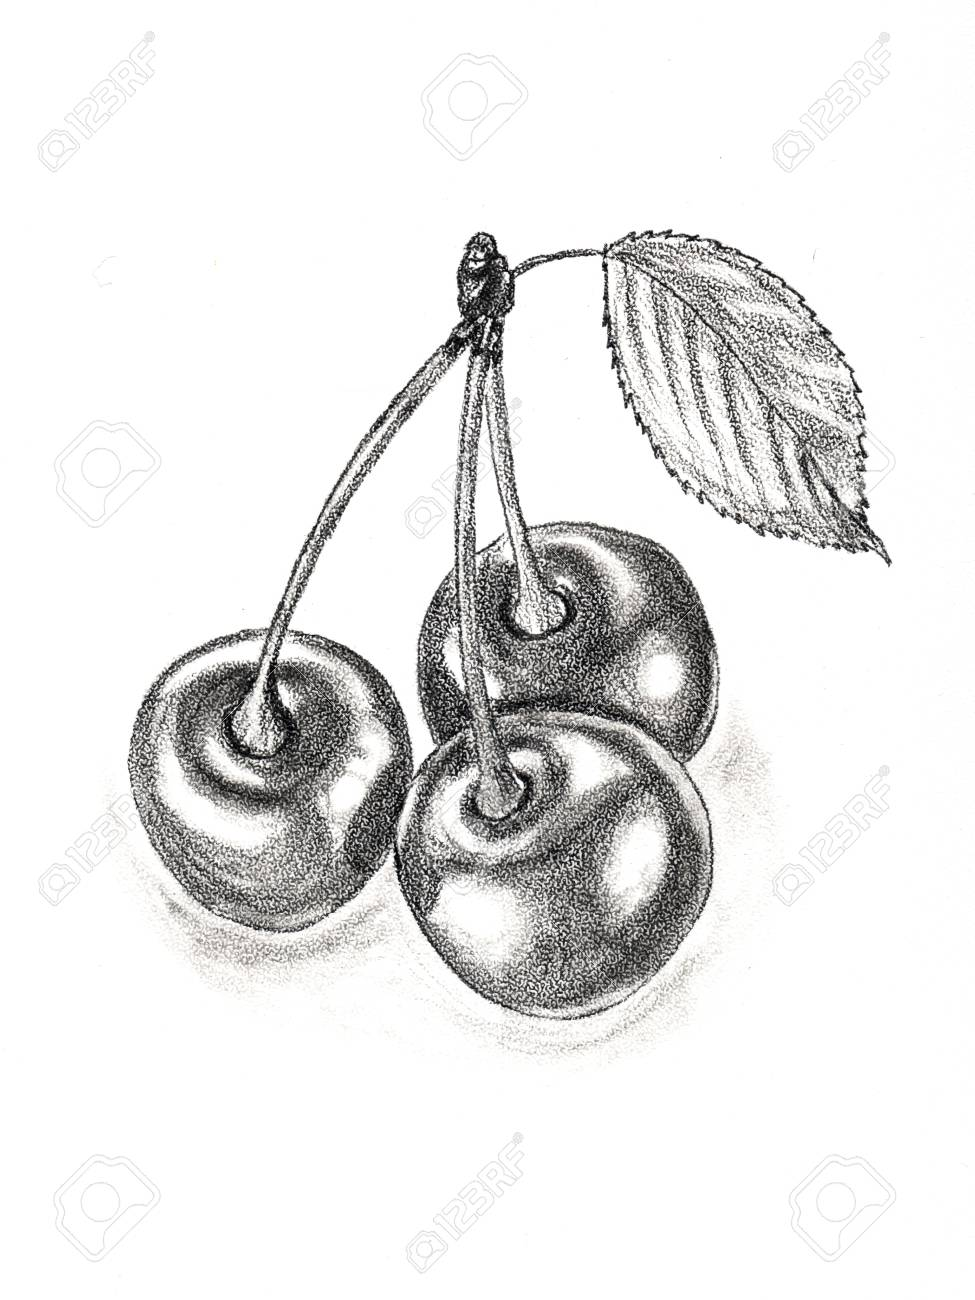 Three berries on a branch with a leaf hand drawing with a